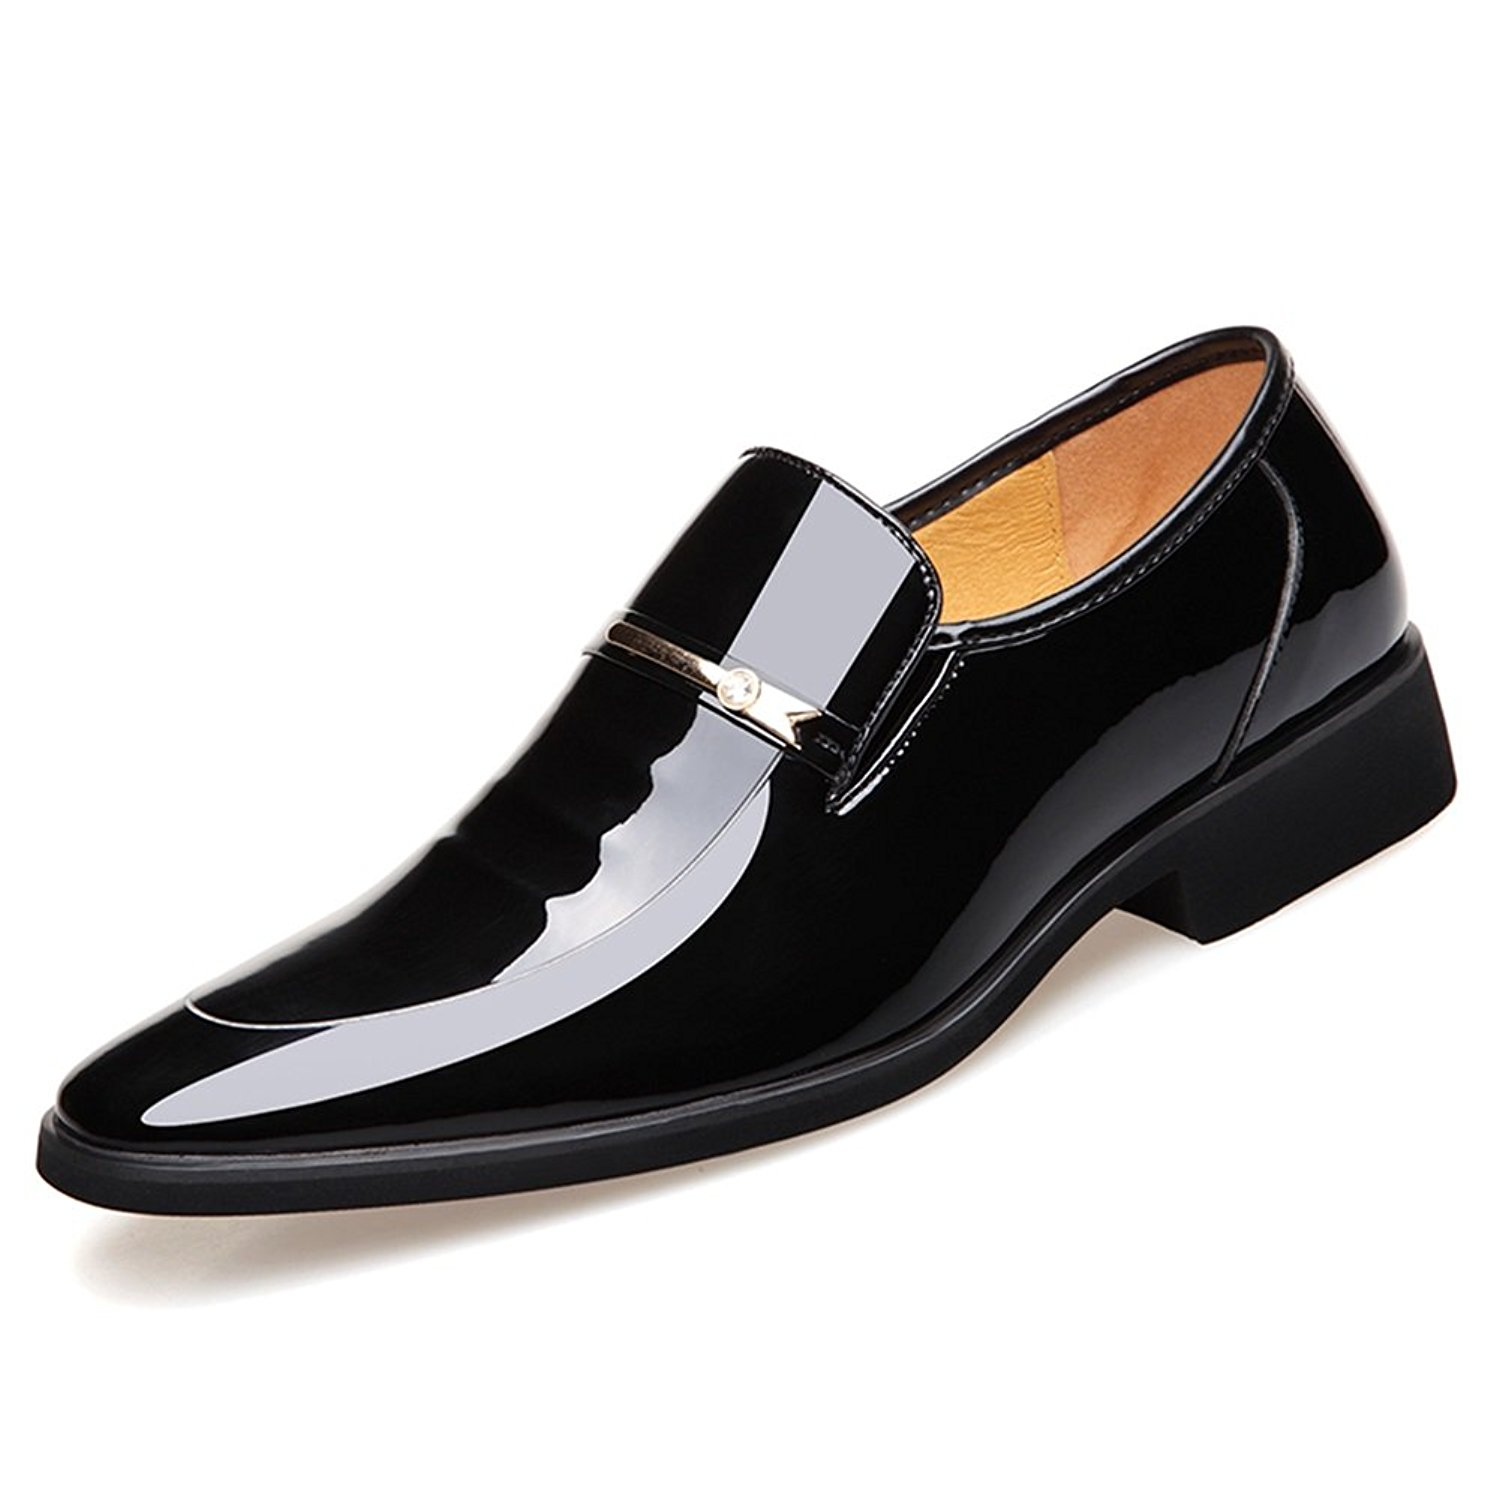 Huanhuan Men's Shoes Microfiber 2018 New Pointed Toe Glisten Wedding Shoes Spring Fall Formal Shoes Oxfords Business Shoes Black, Brown